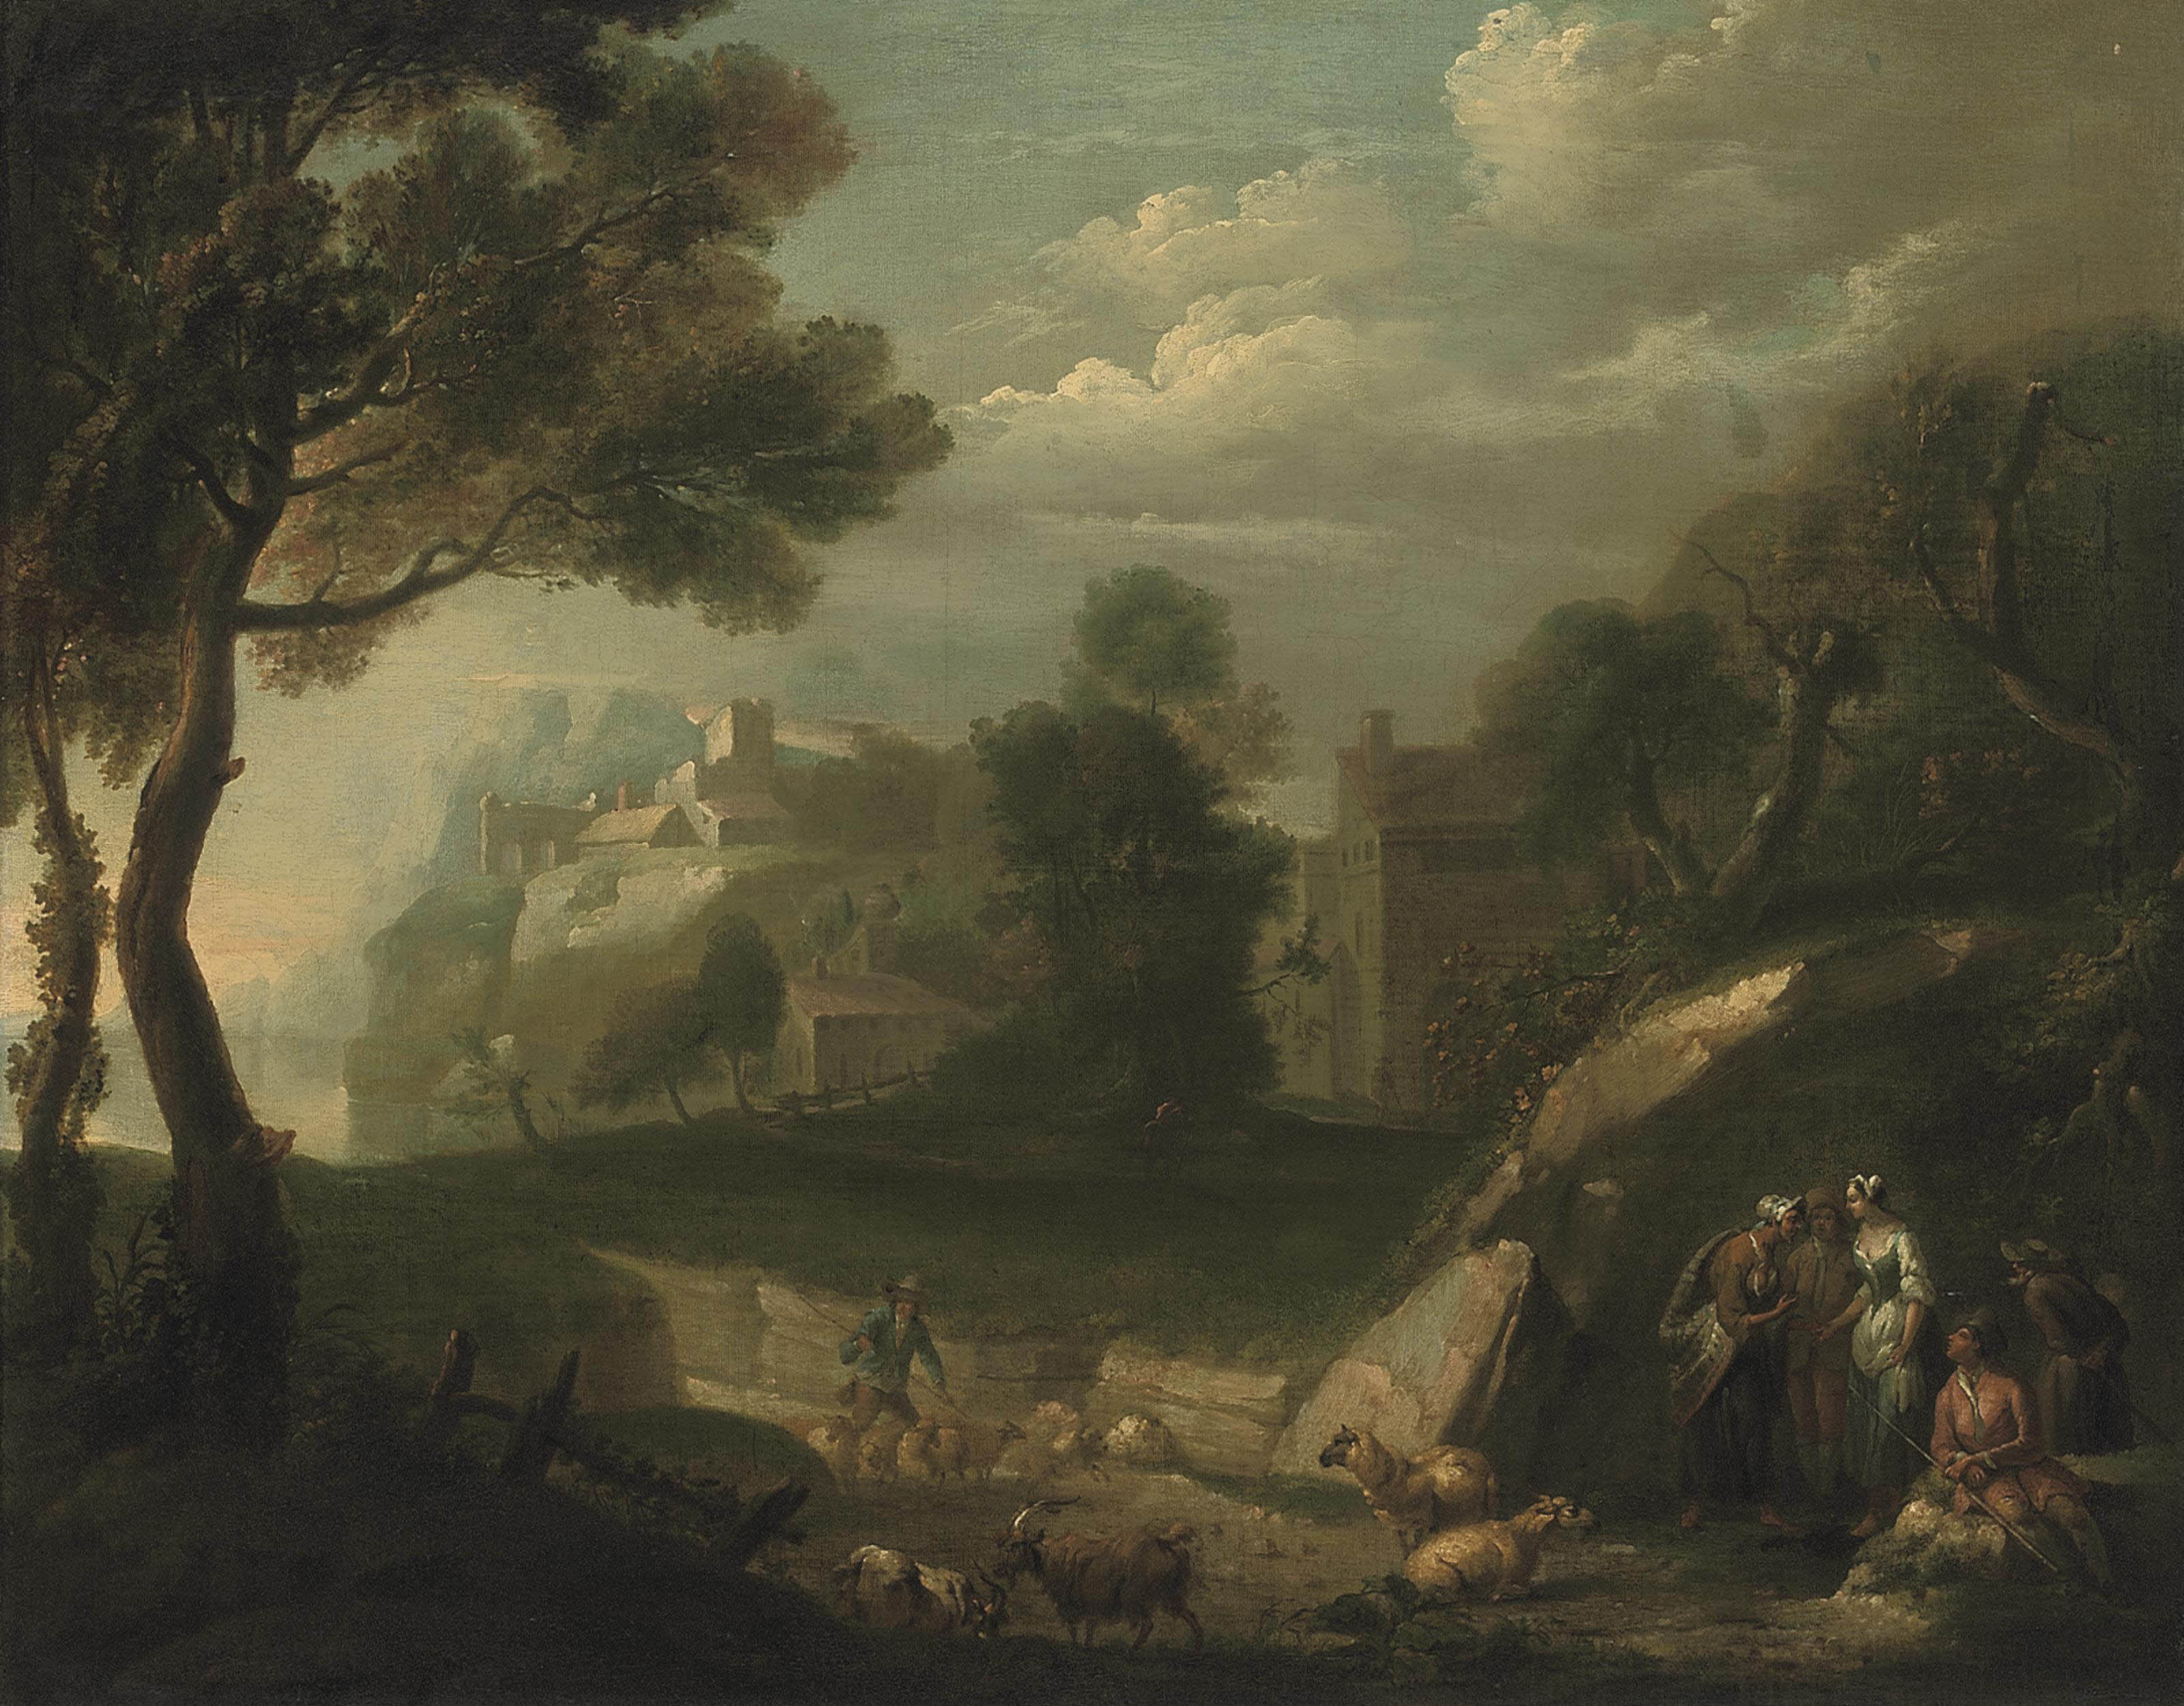 A wooded river landscape with shepherds and their flock